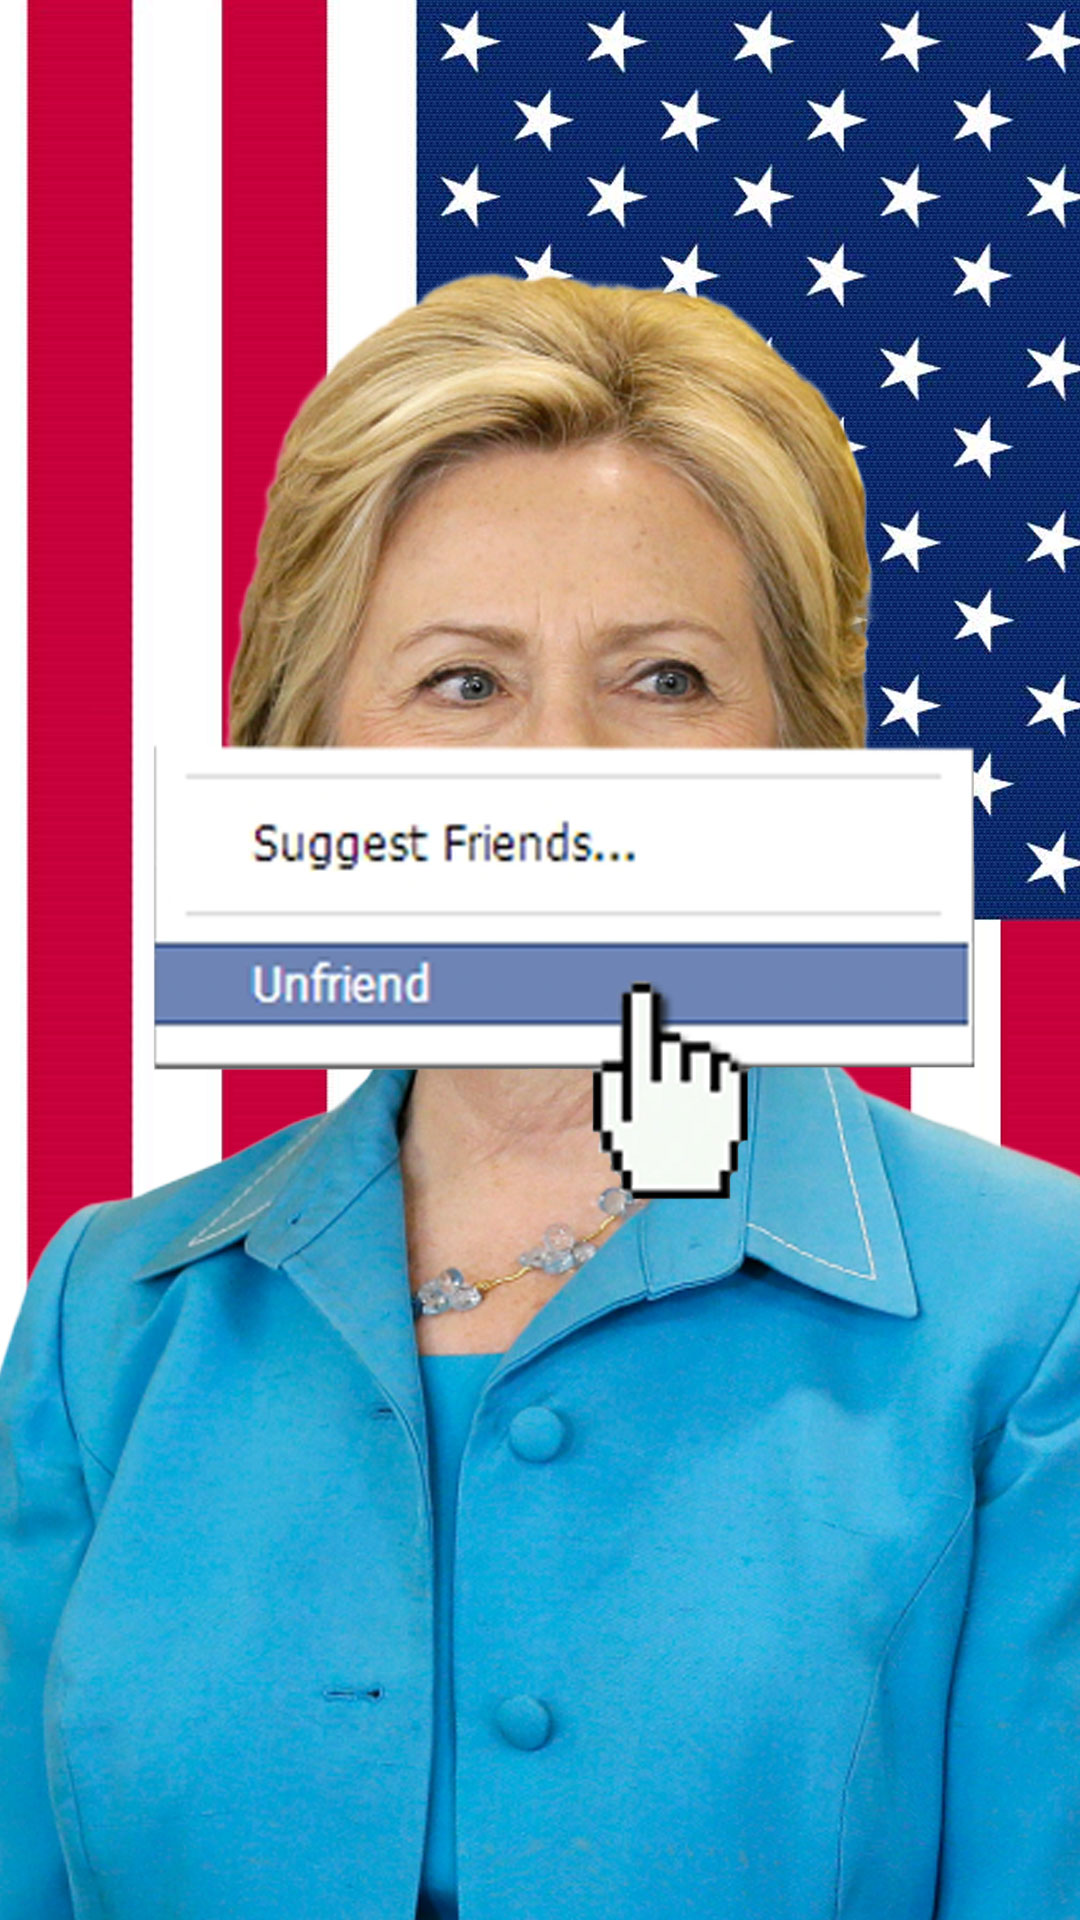 politician_unfriend1.jpg